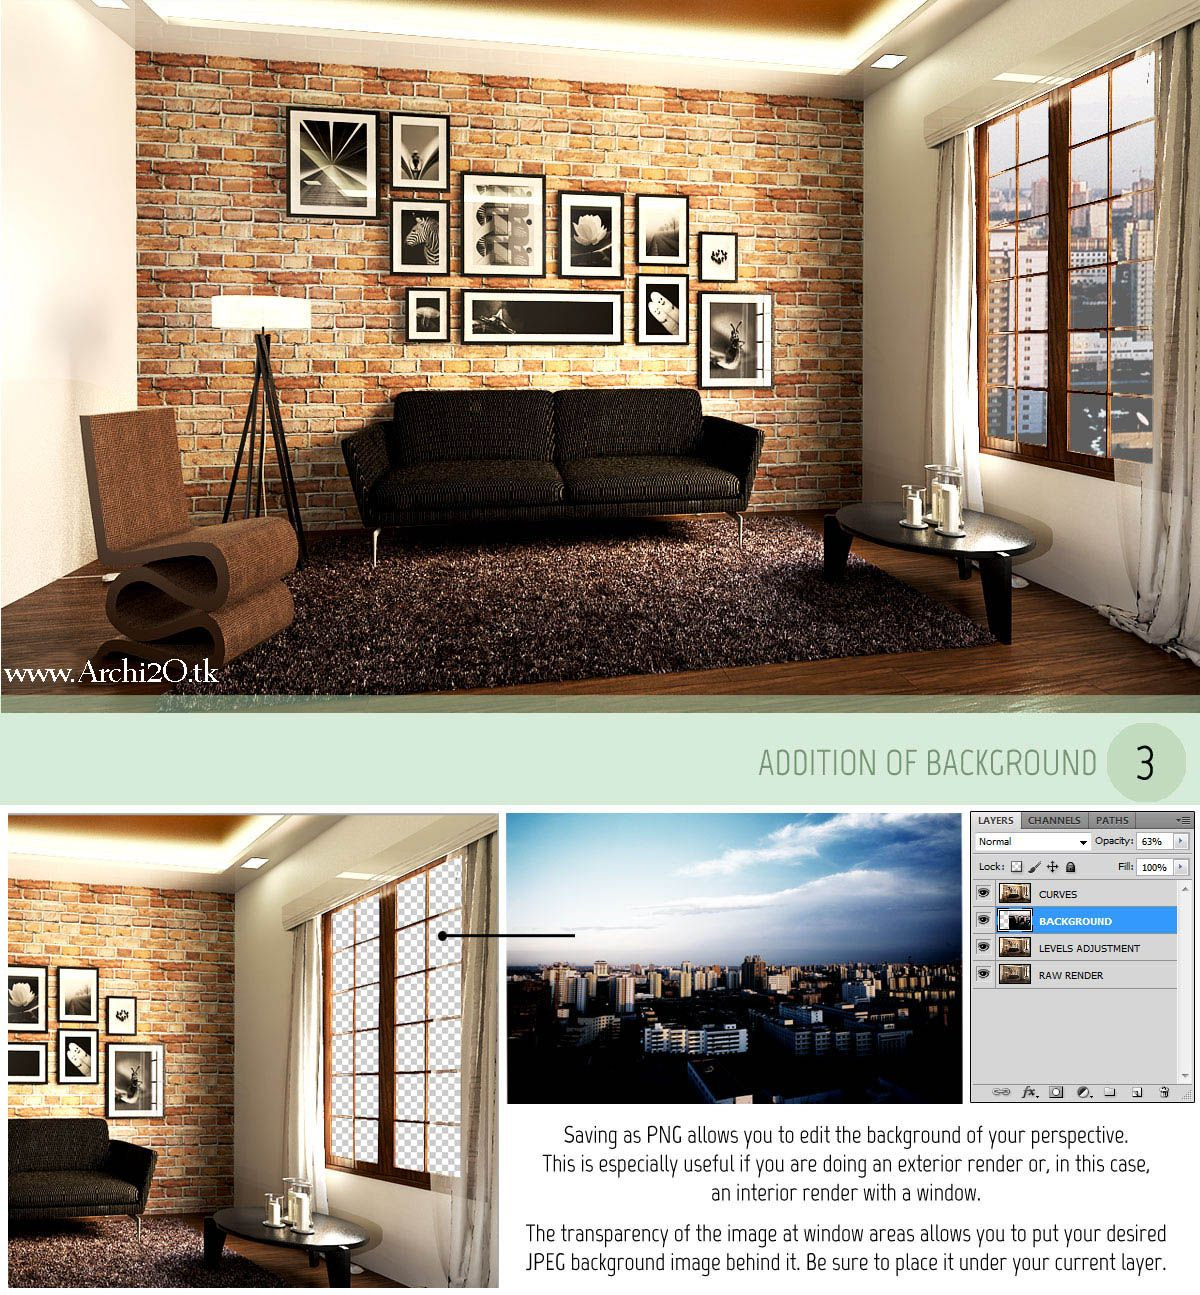 Vray For SketchUp Tutorial Part 3: POST PROCESSING Full Article At: